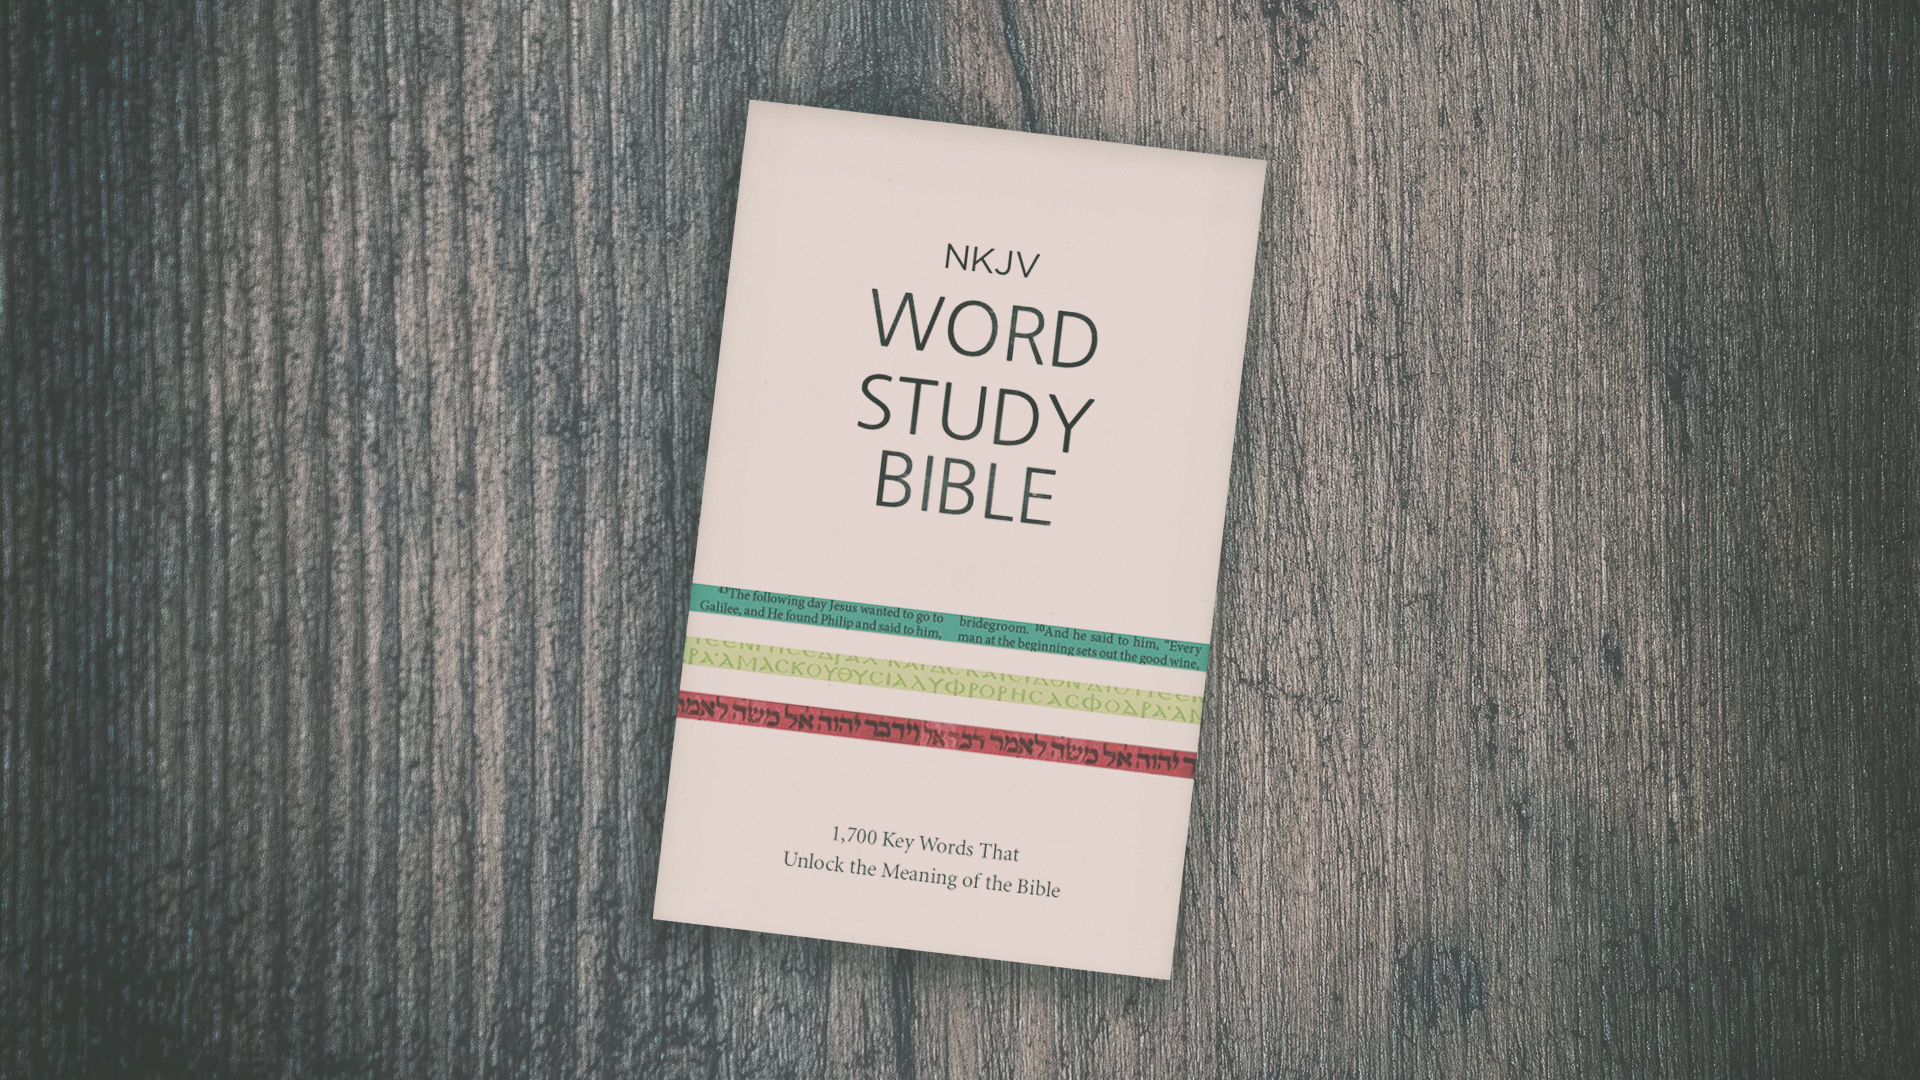 Look Inside: NKJV Word Study Bible - Olive Tree Blog